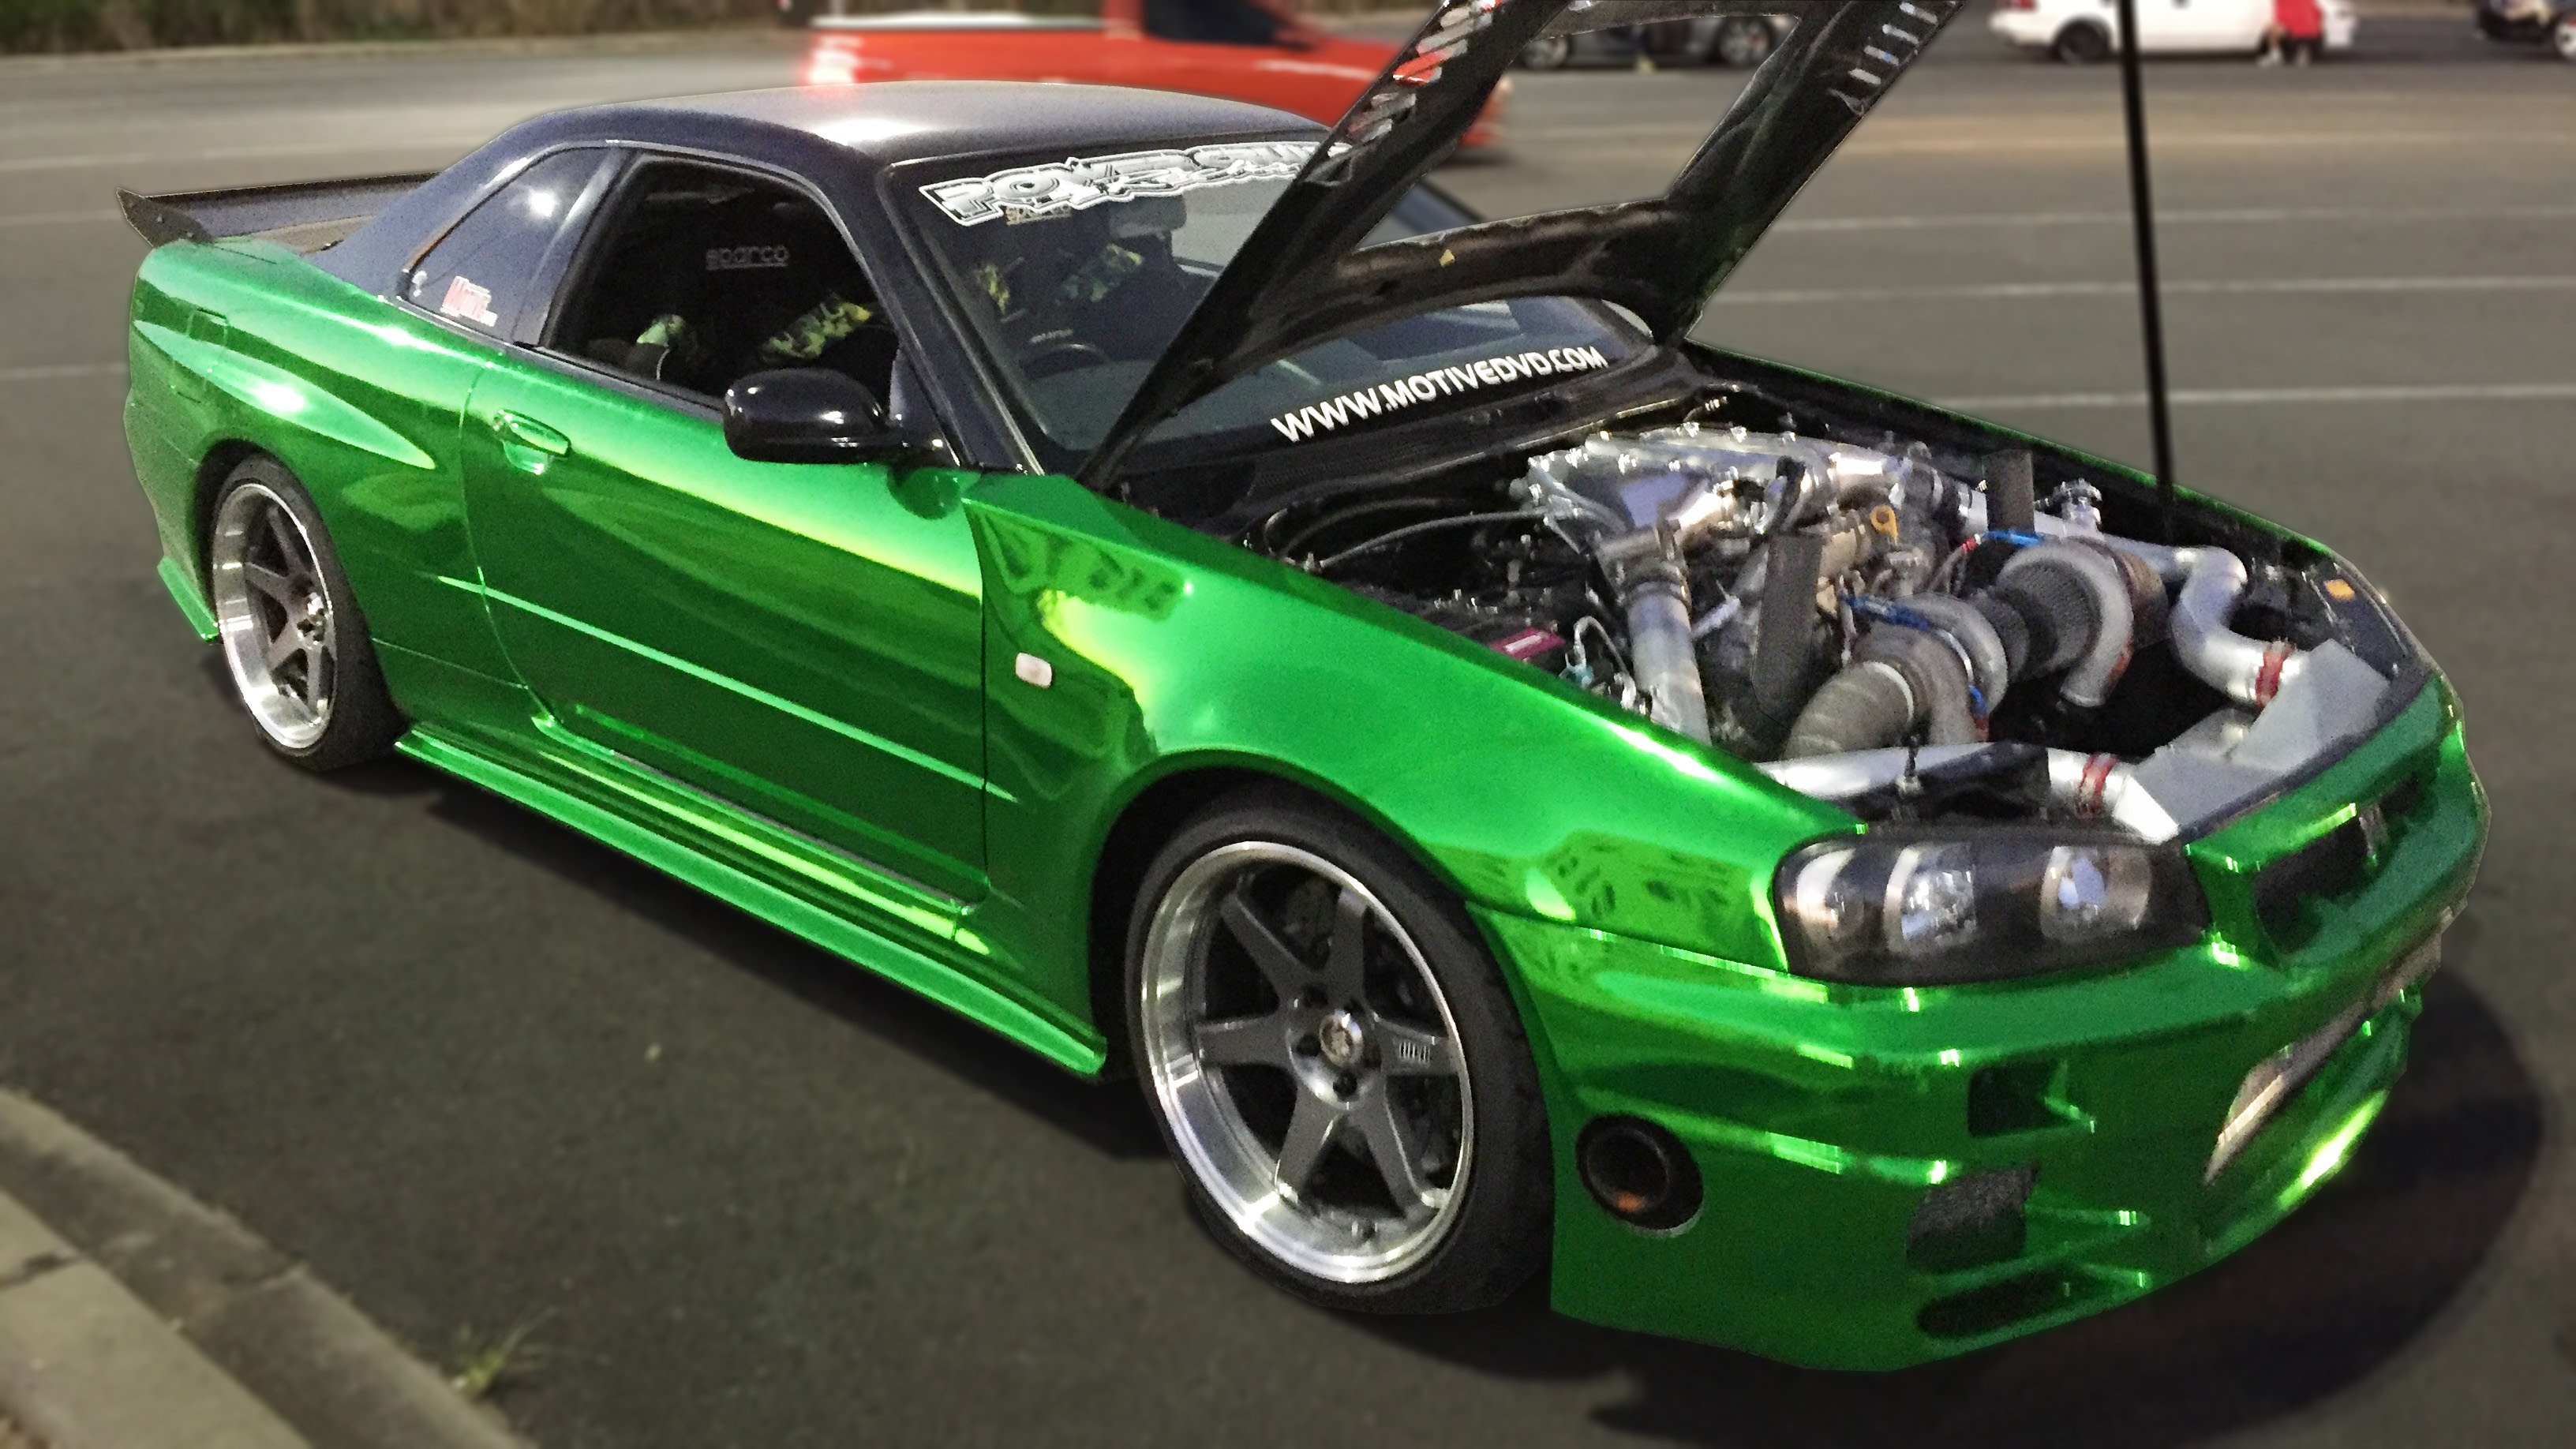 1200hp r34 skyline gt r dragtimes com drag racing fast cars muscle